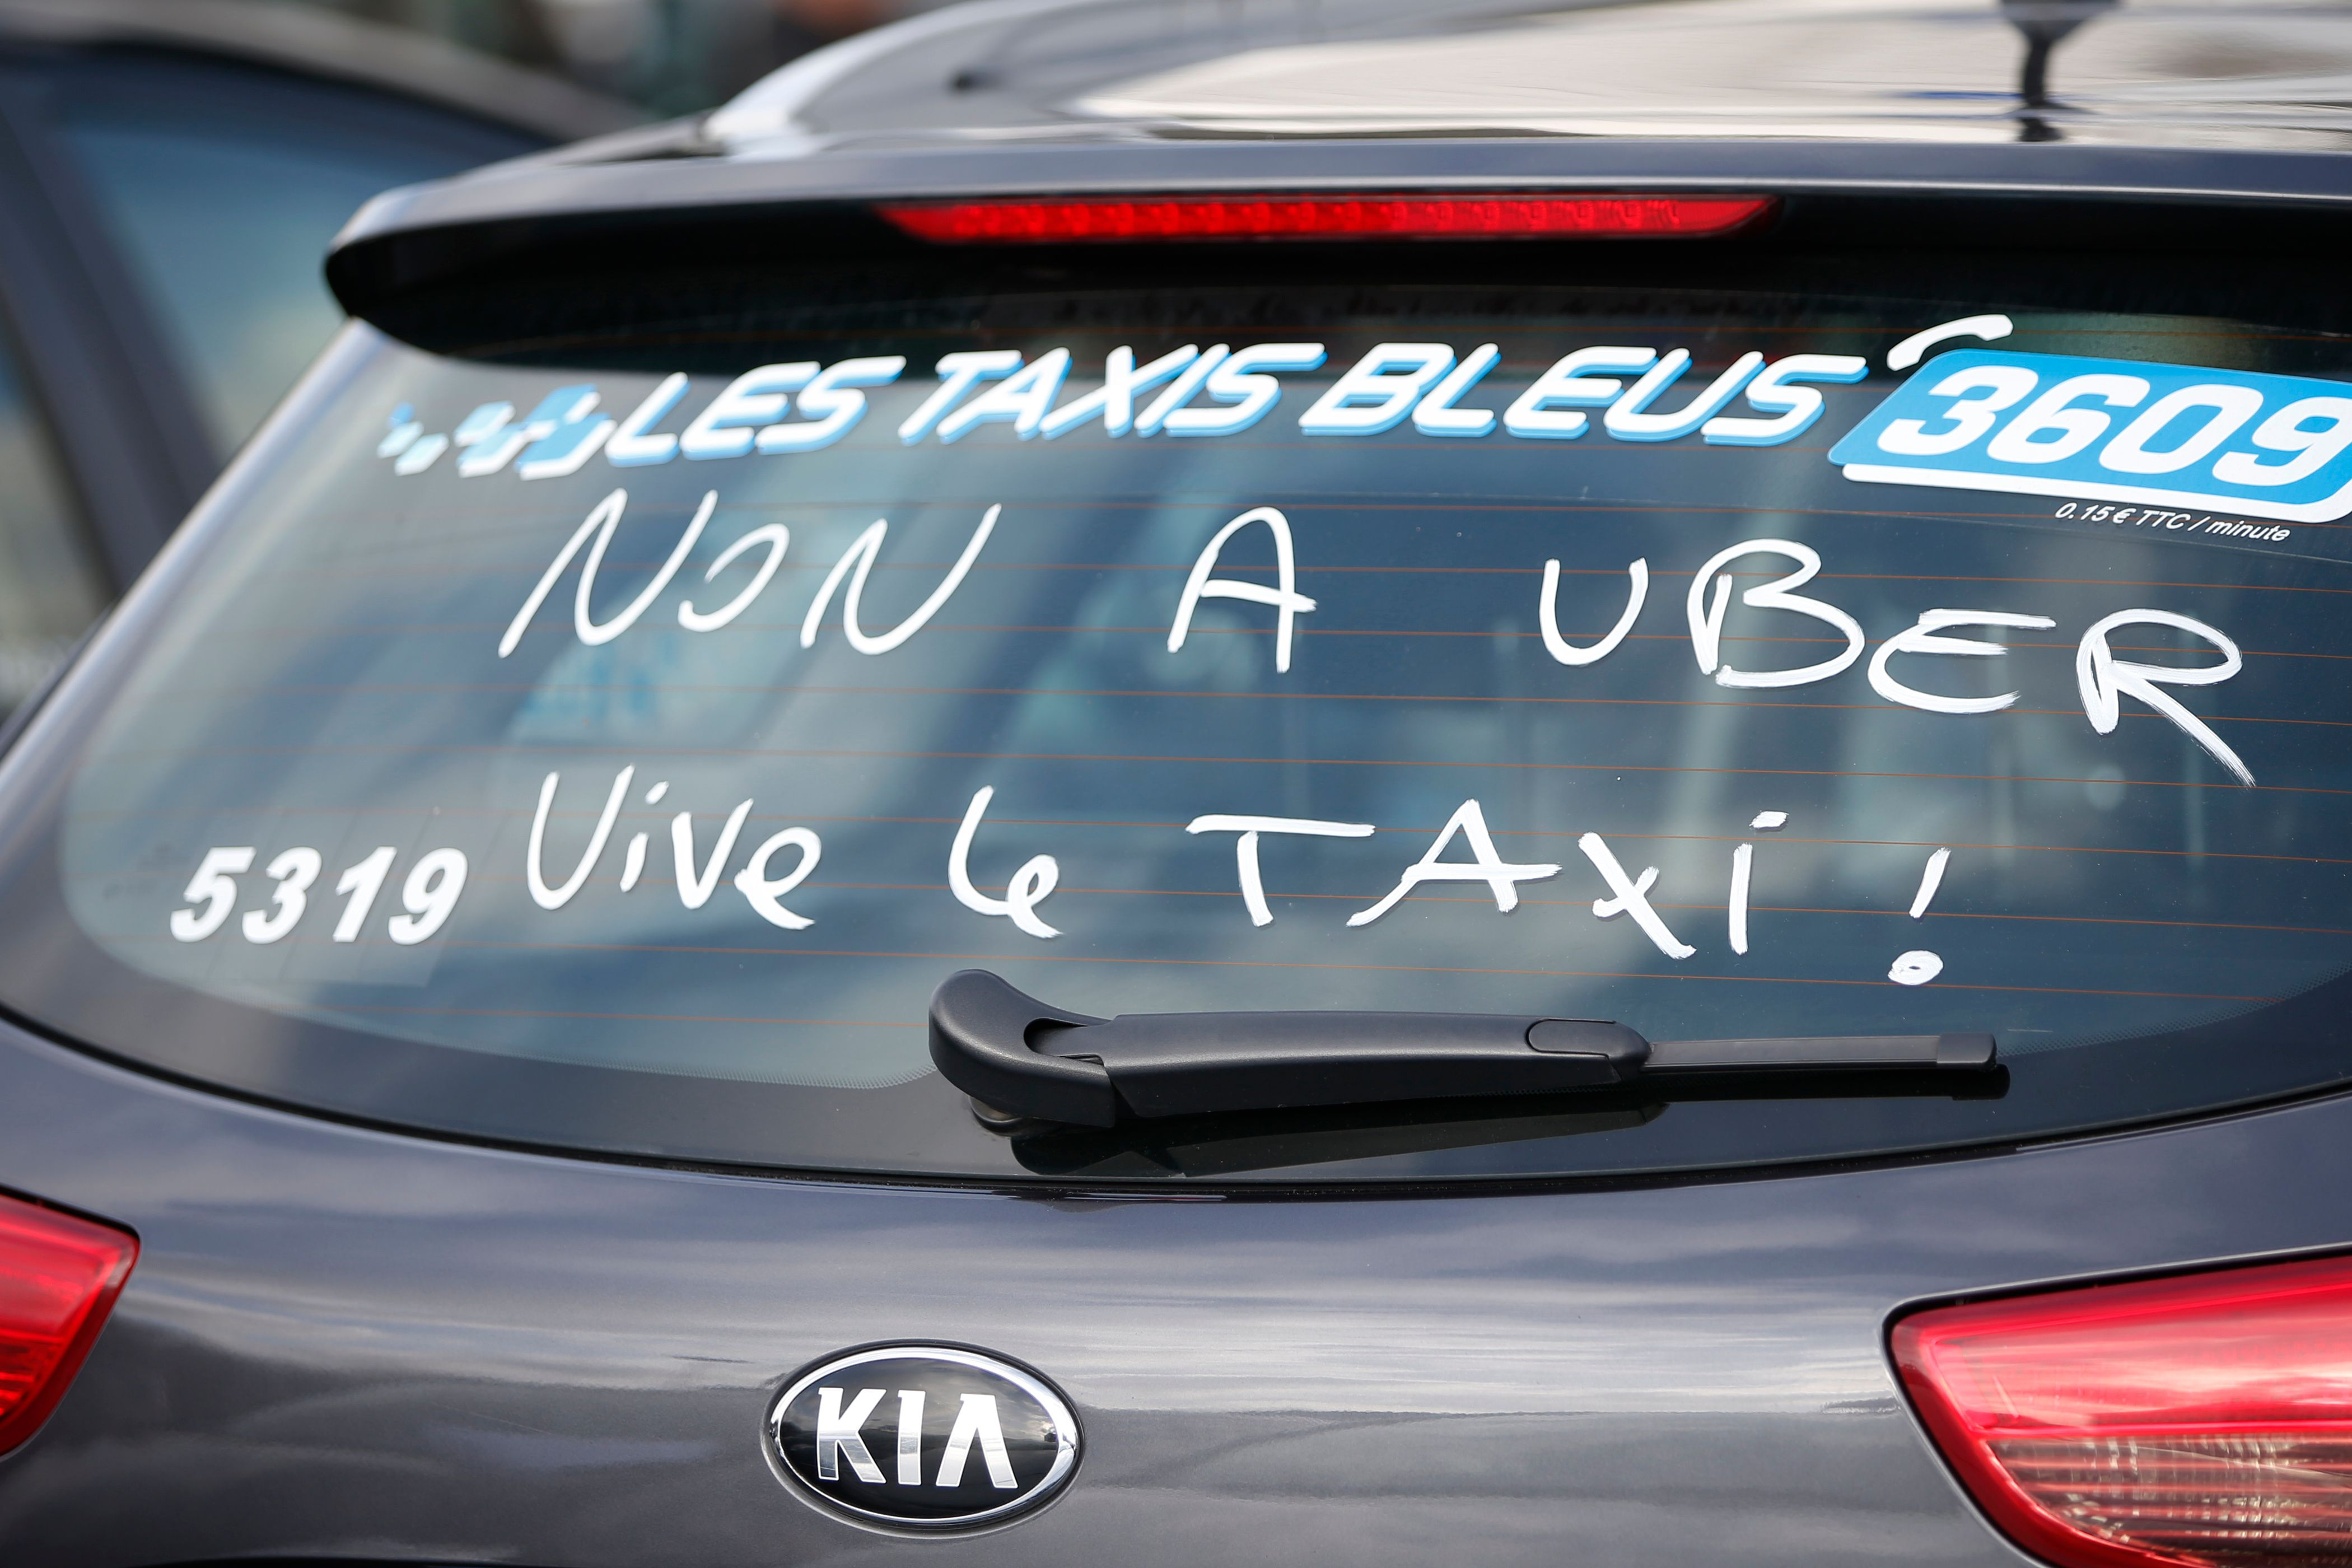 Taxis - VTC: peut-on continuer à combattre l'innovation?